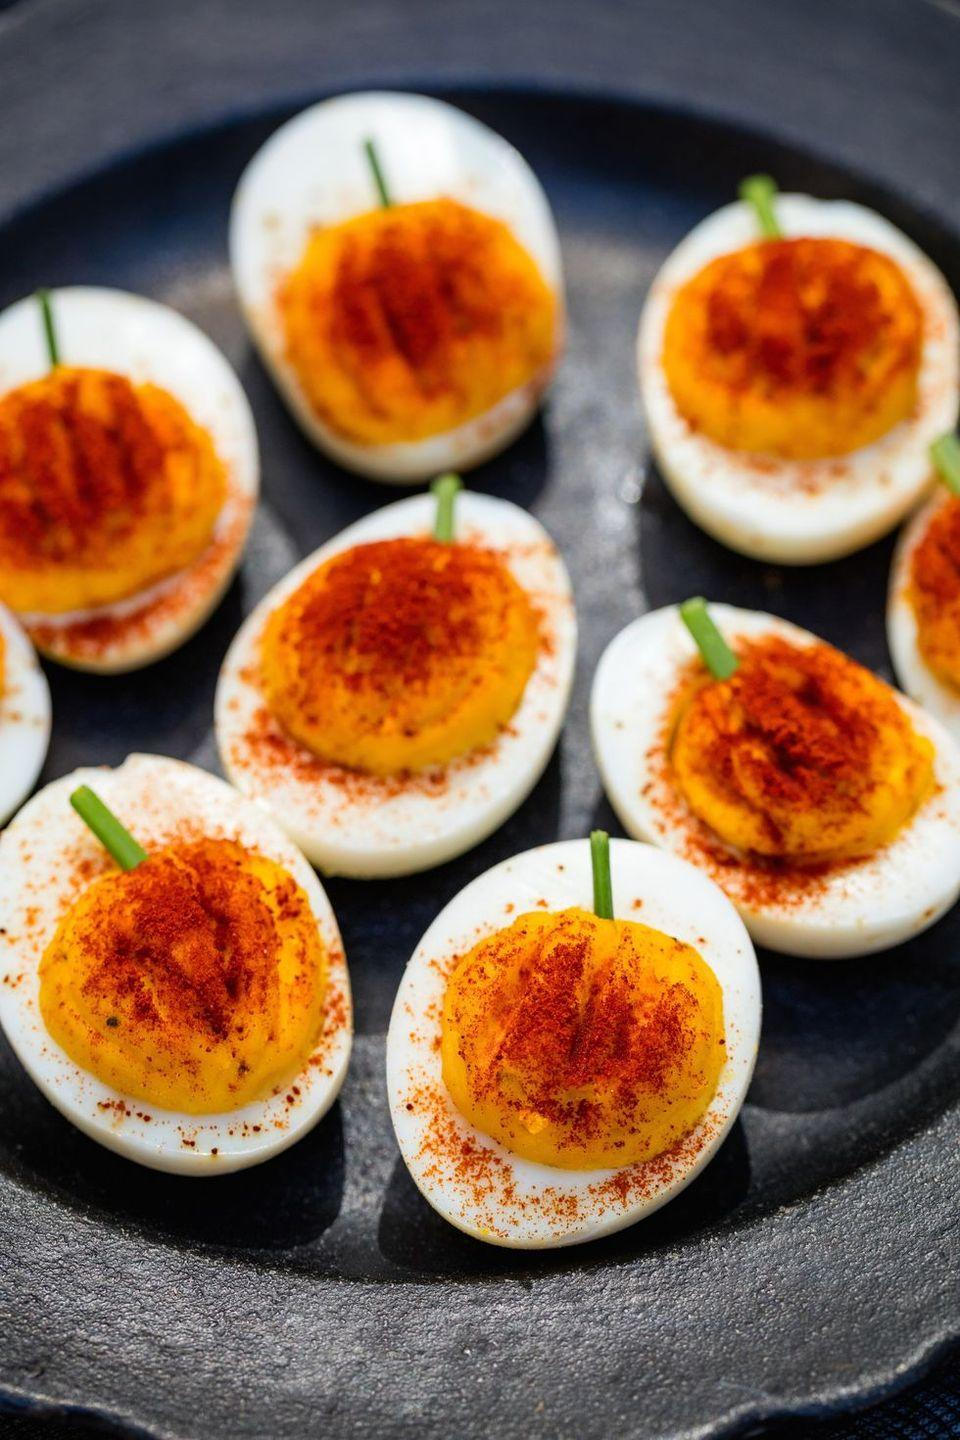 """<p>Deviled eggs are a perfect appetizer for a Halloween dinner. Spice them up with this fun pumpkin-influenced version. </p><p><strong><em>Get the recipe at <a href=""""https://www.delish.com/cooking/recipe-ideas/recipes/a44140/pumpkin-deviled-eggs-recipe/"""" rel=""""nofollow noopener"""" target=""""_blank"""" data-ylk=""""slk:Delish"""" class=""""link rapid-noclick-resp"""">Delish</a>. </em></strong></p>"""